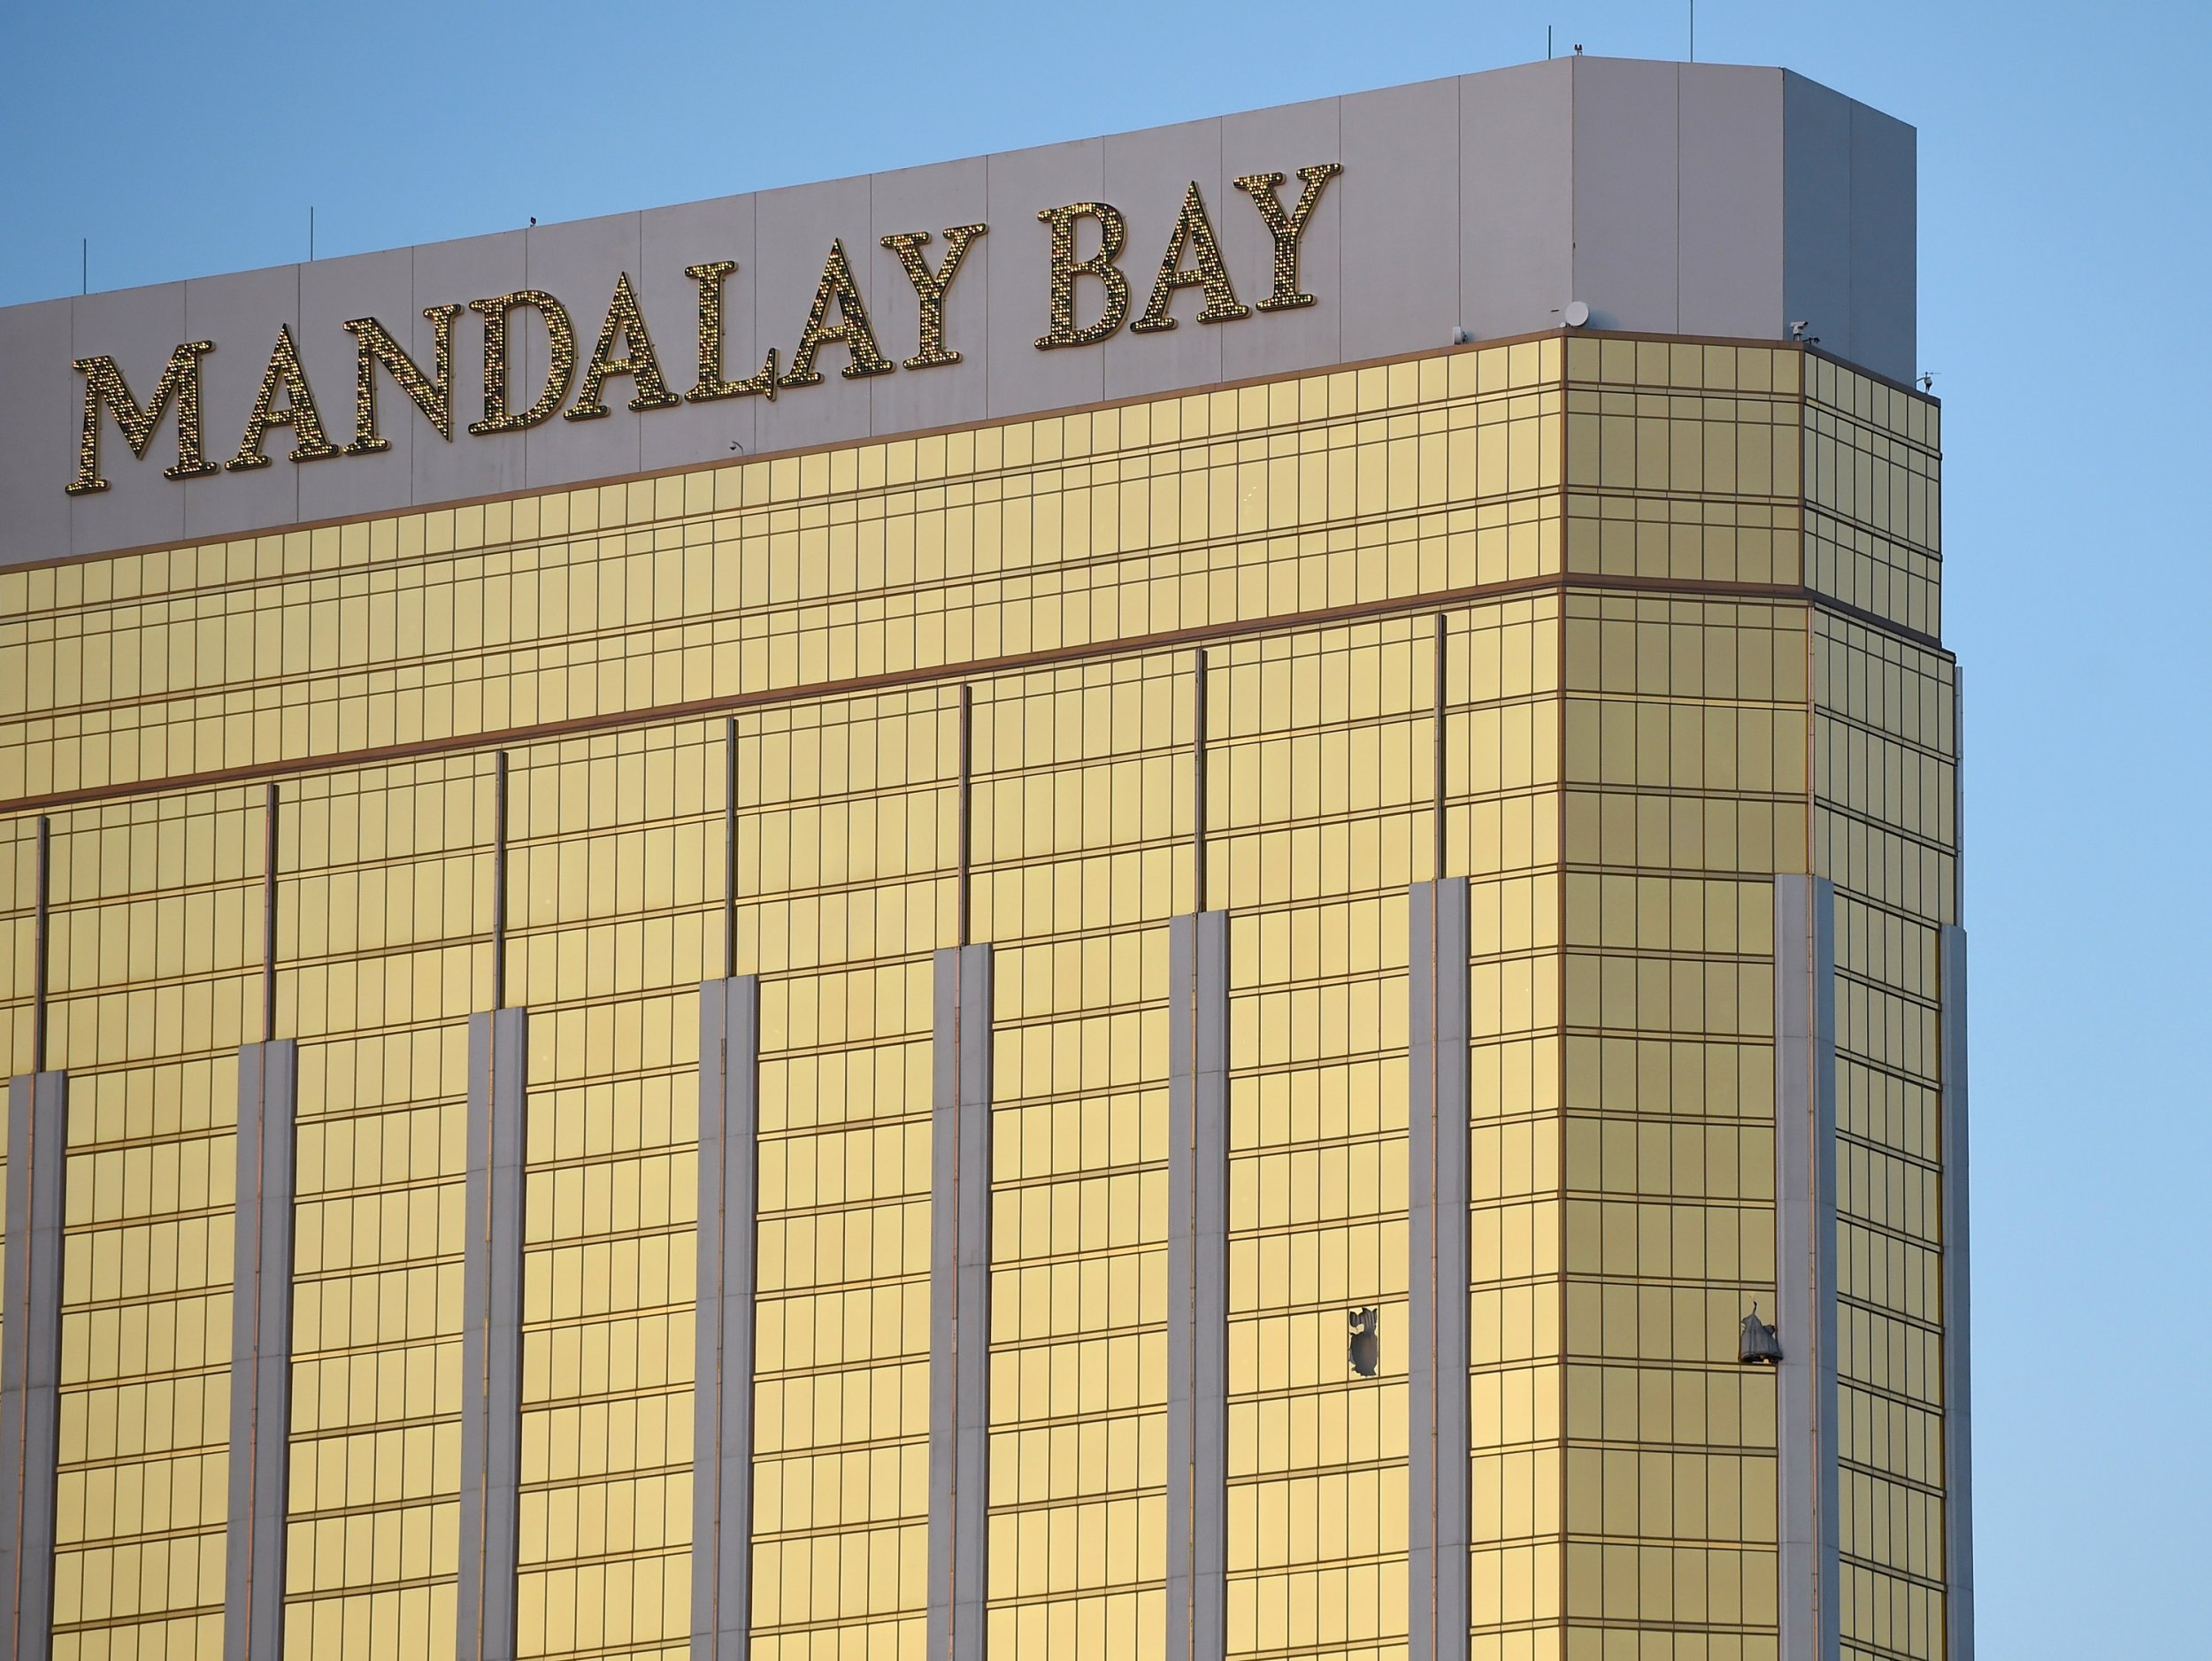 1002_Mandalay Bay Hotel